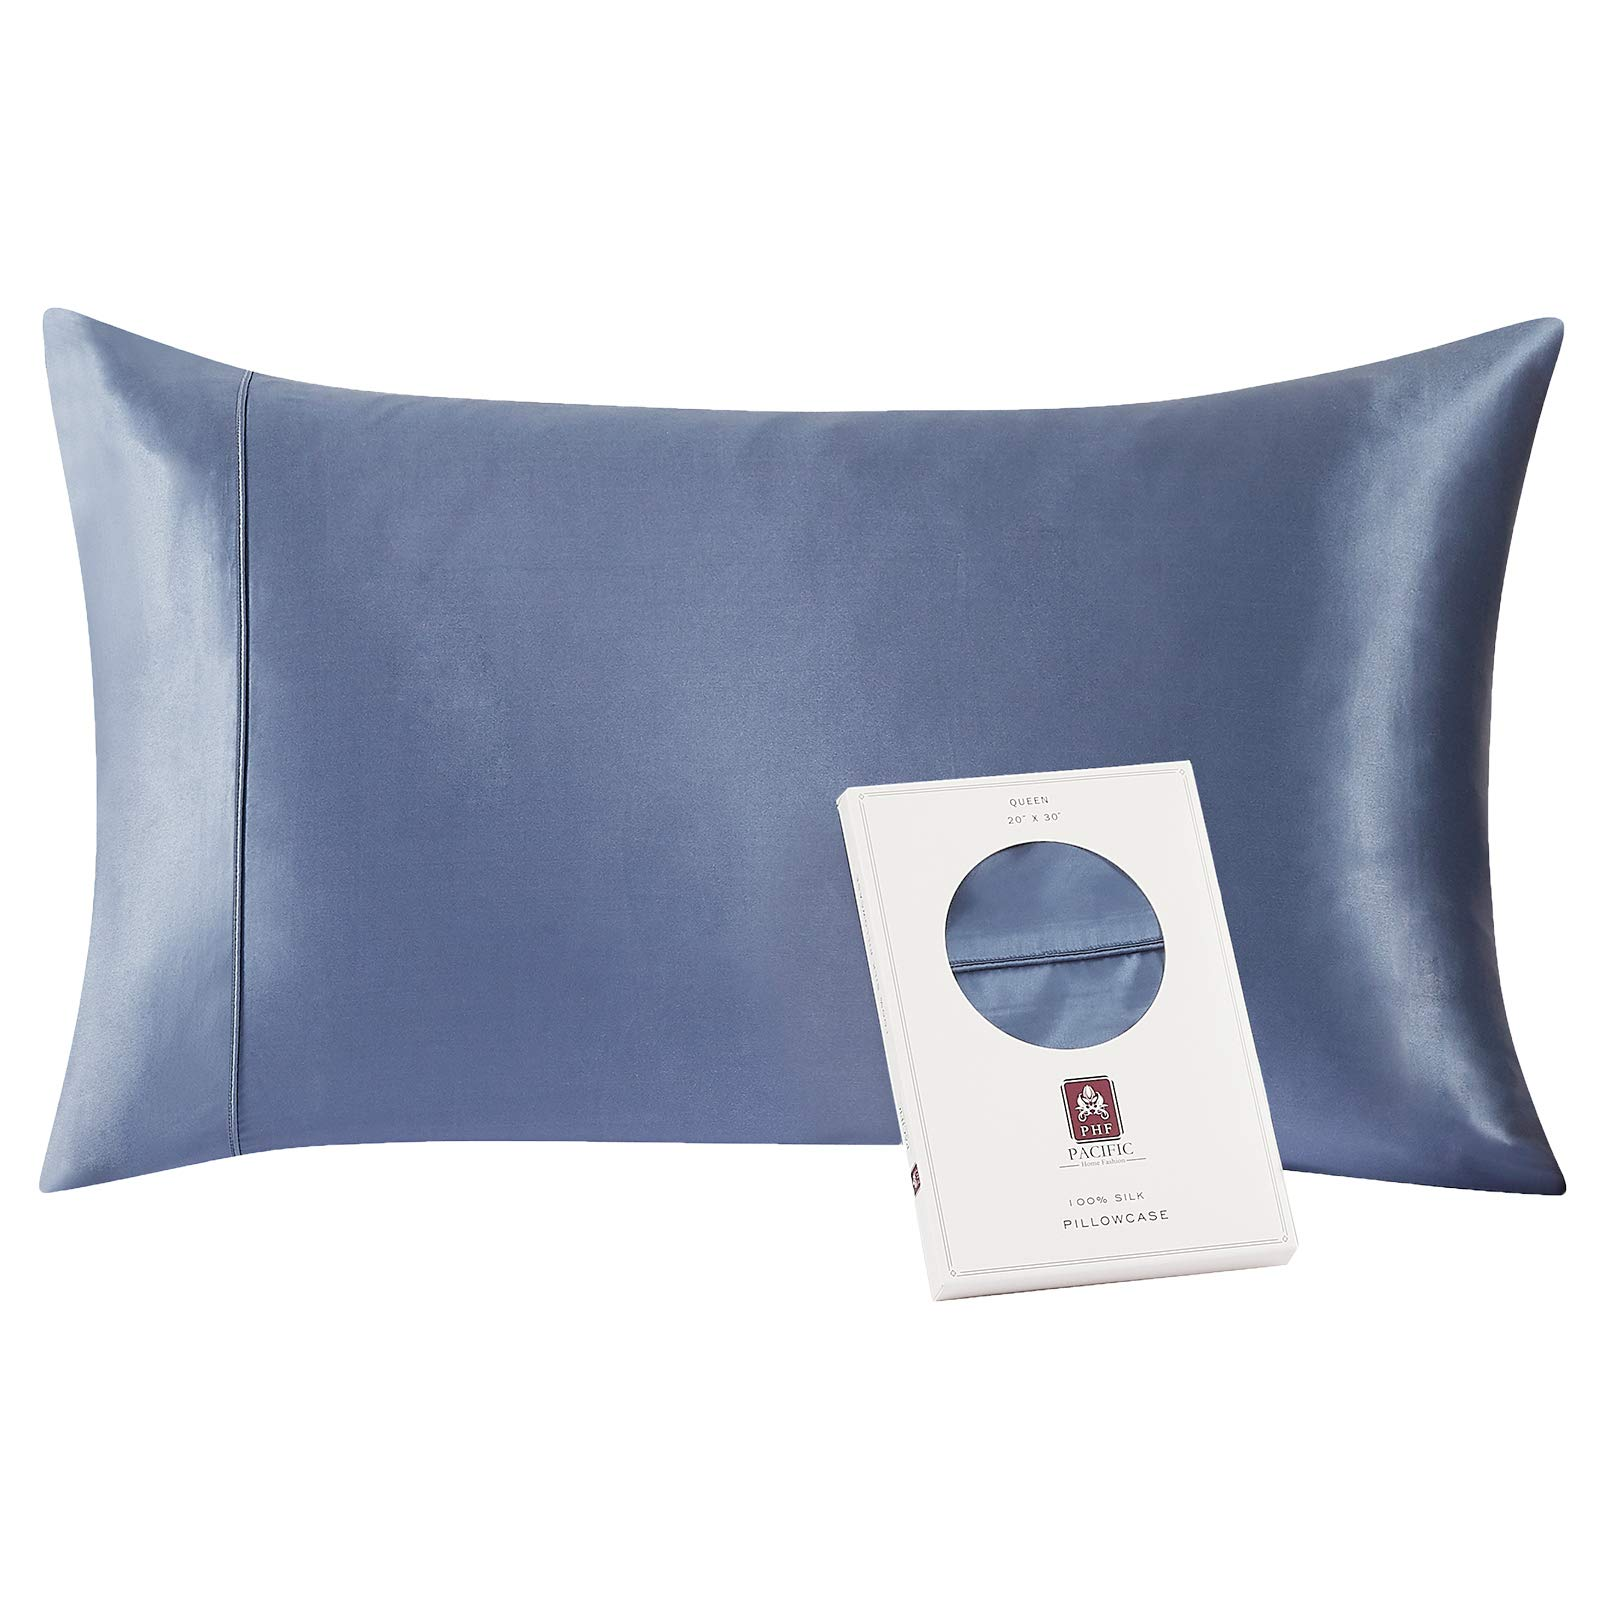 PHF 100% Pure Mulberry Silk Pillowcase, 1 Pack, Queen Size (20x30 inches) for Skin & Hair, Both Sides Soft Breathable Silk Pillow Case with Envelope Closure, Blue